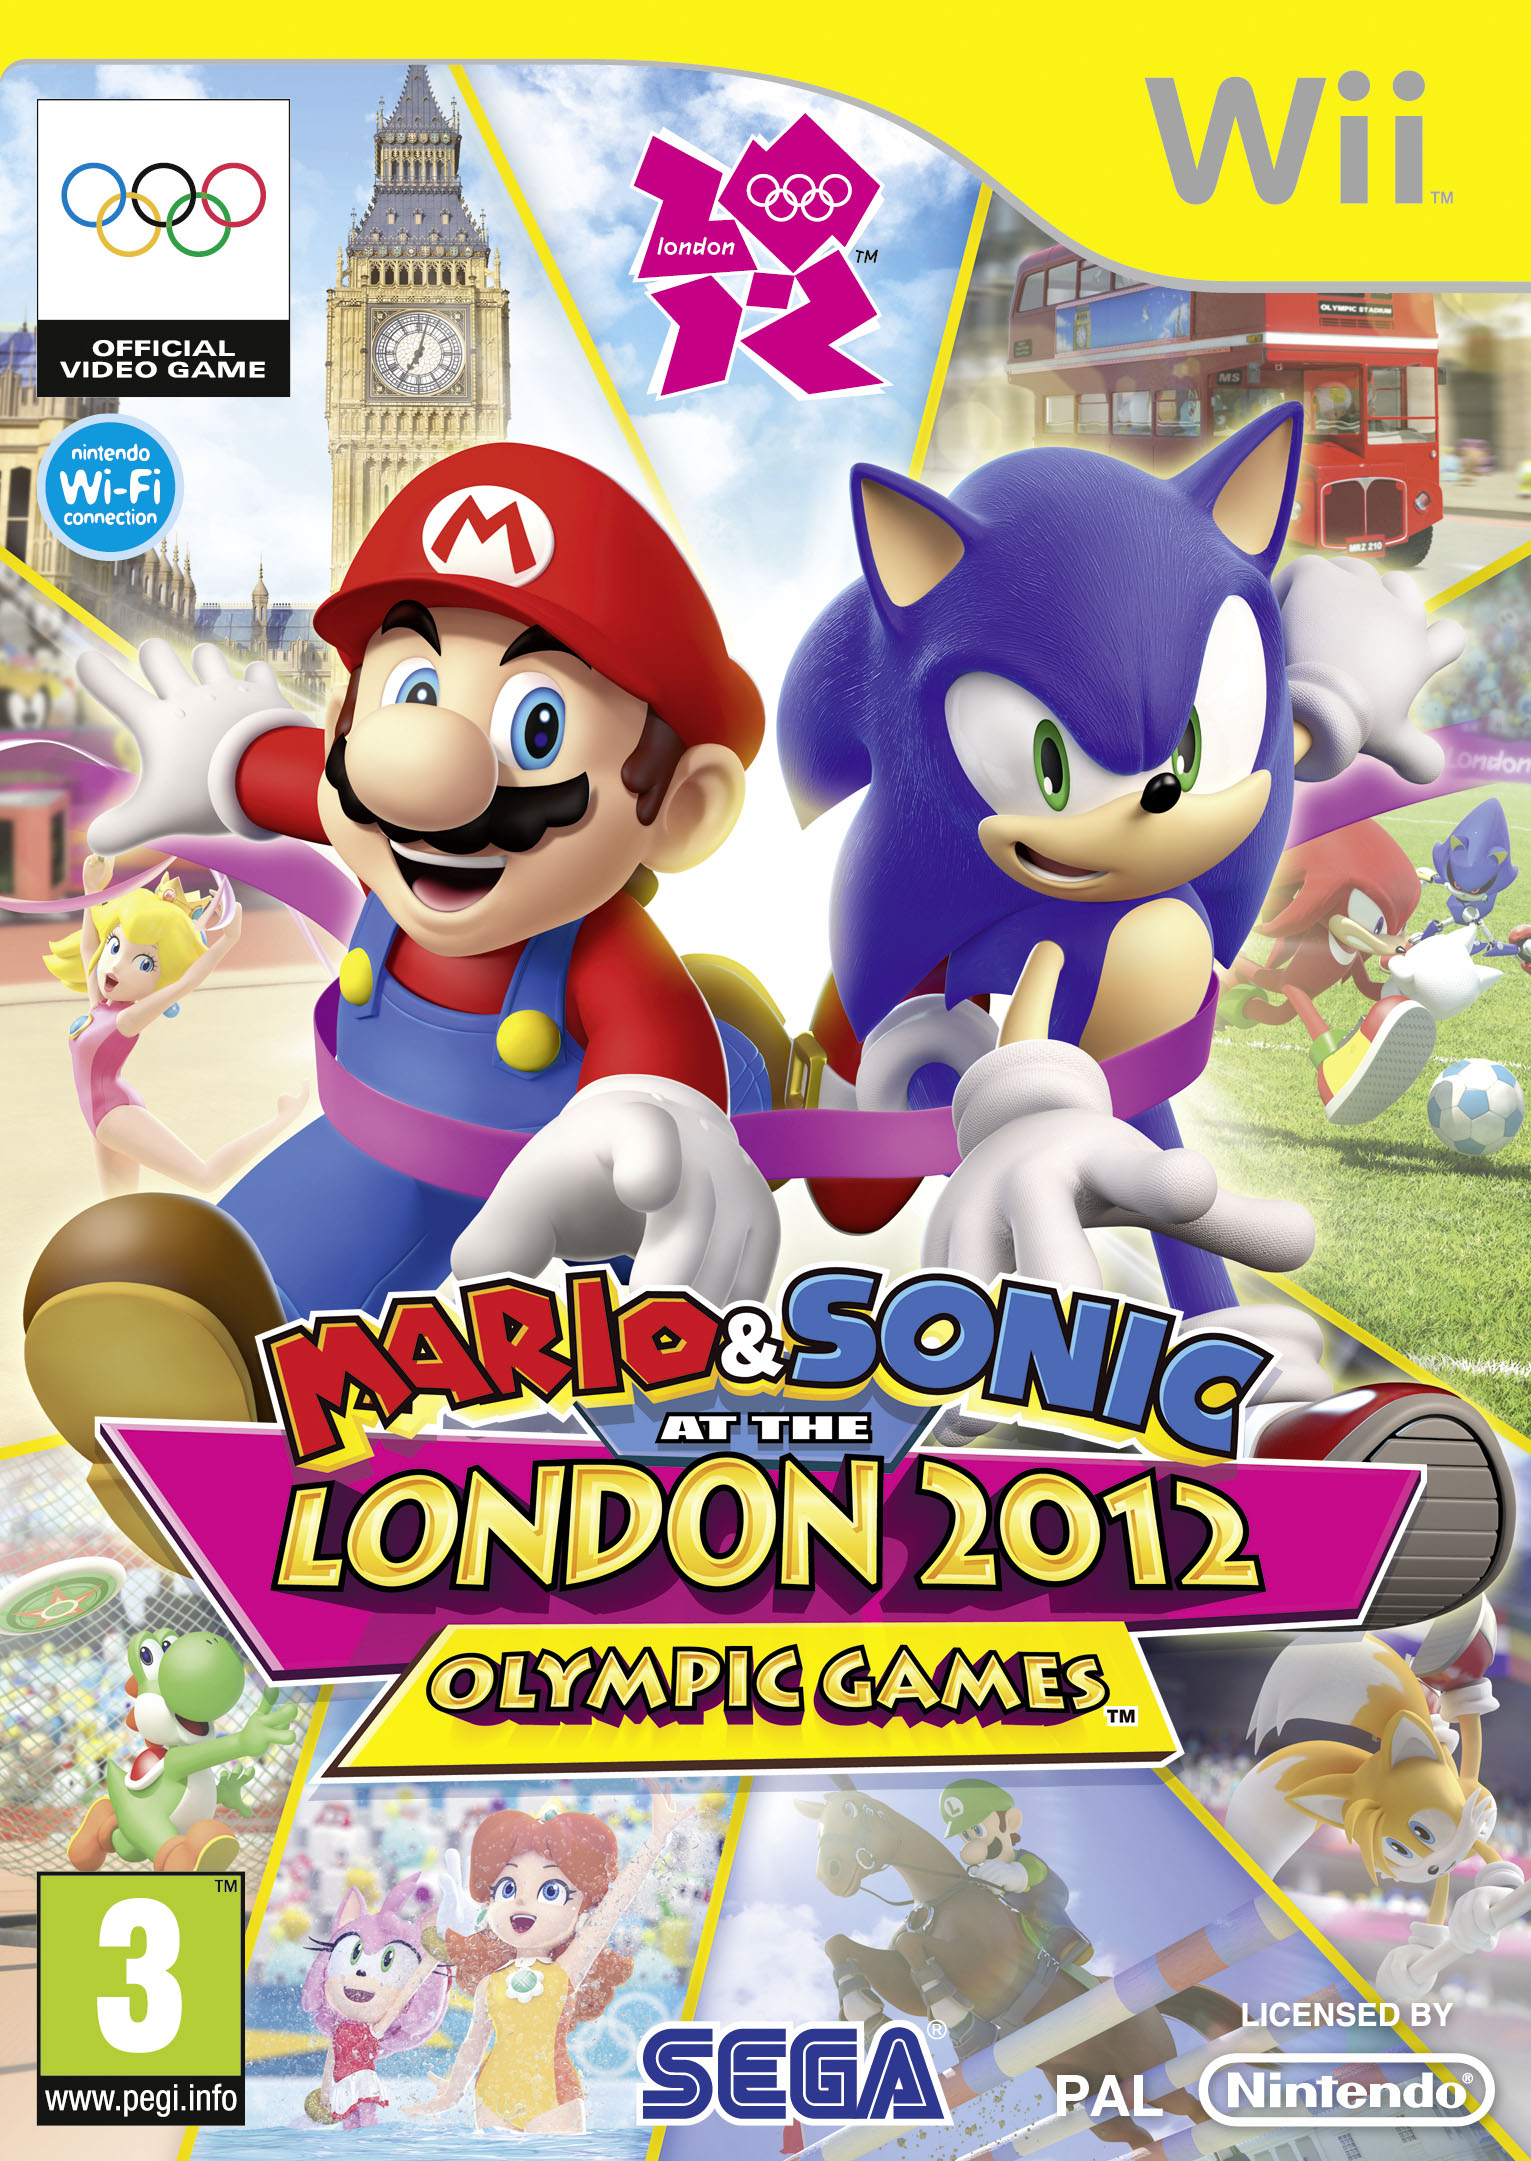 Sonic games online uk gambling industry analysis